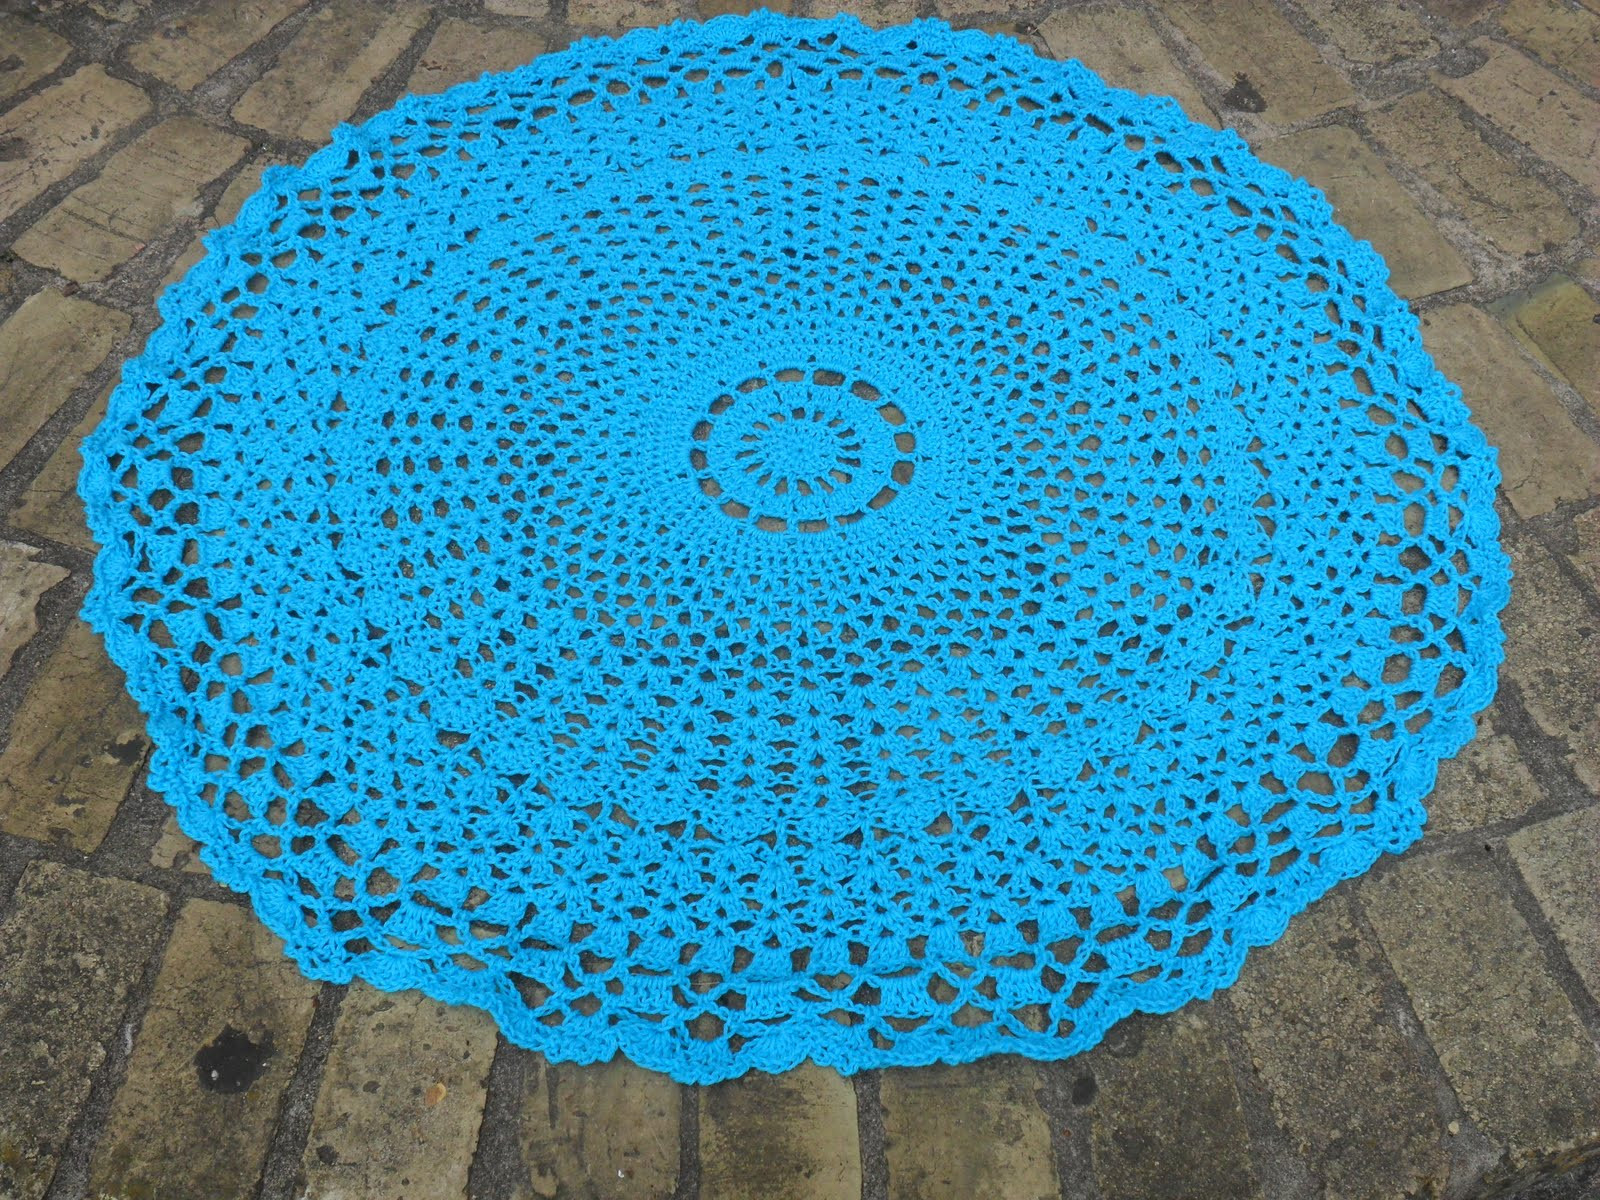 Awesome Valis Crochet Moment New Pattern for Valis Circular Round Crochet Blanket Pattern Of Wonderful 41 Models Round Crochet Blanket Pattern